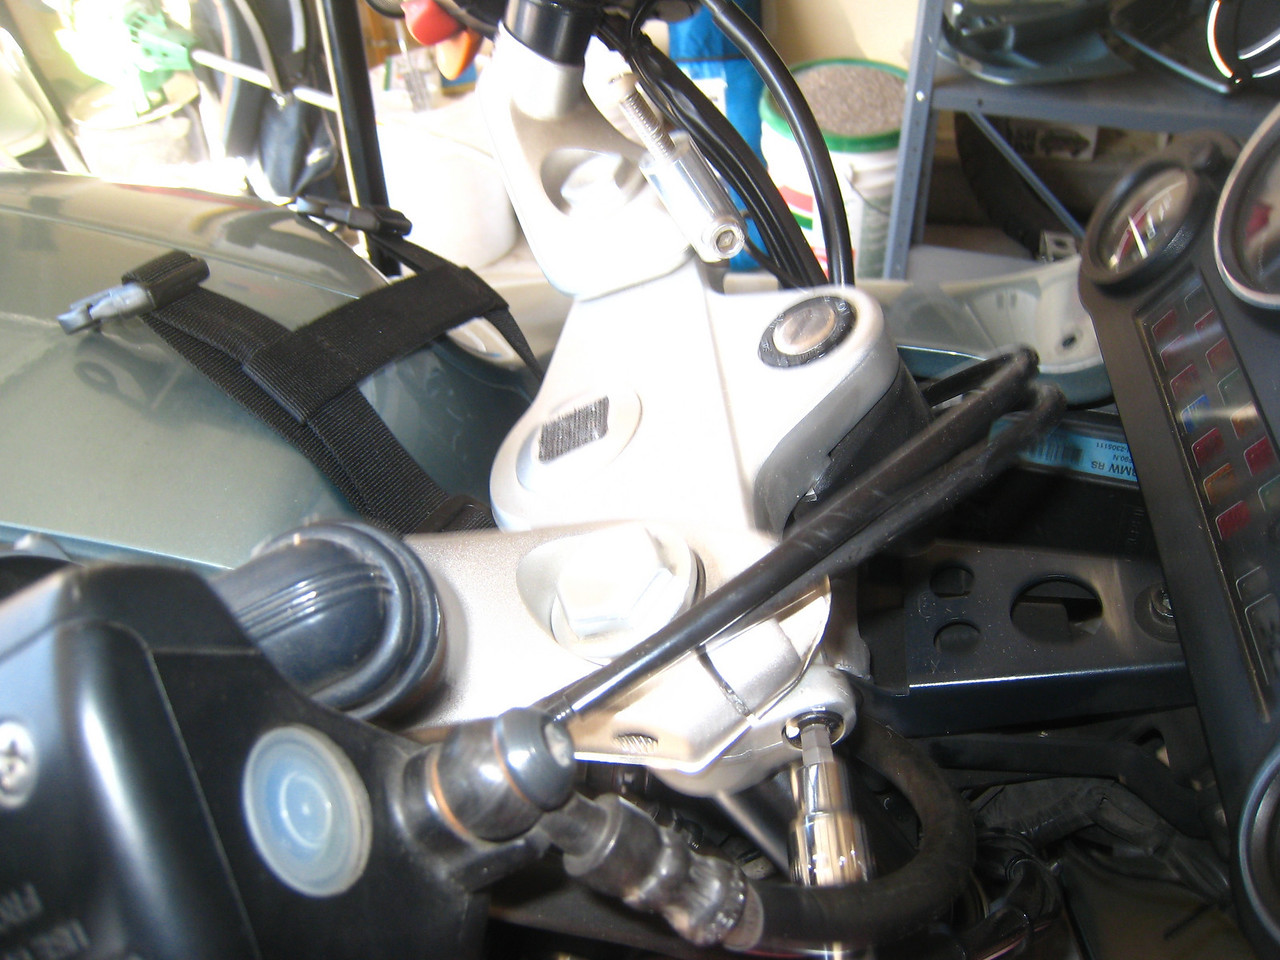 Re-install the handlebar assembly and position the fork tube so that it is flush with the top of the handlebar assembly.